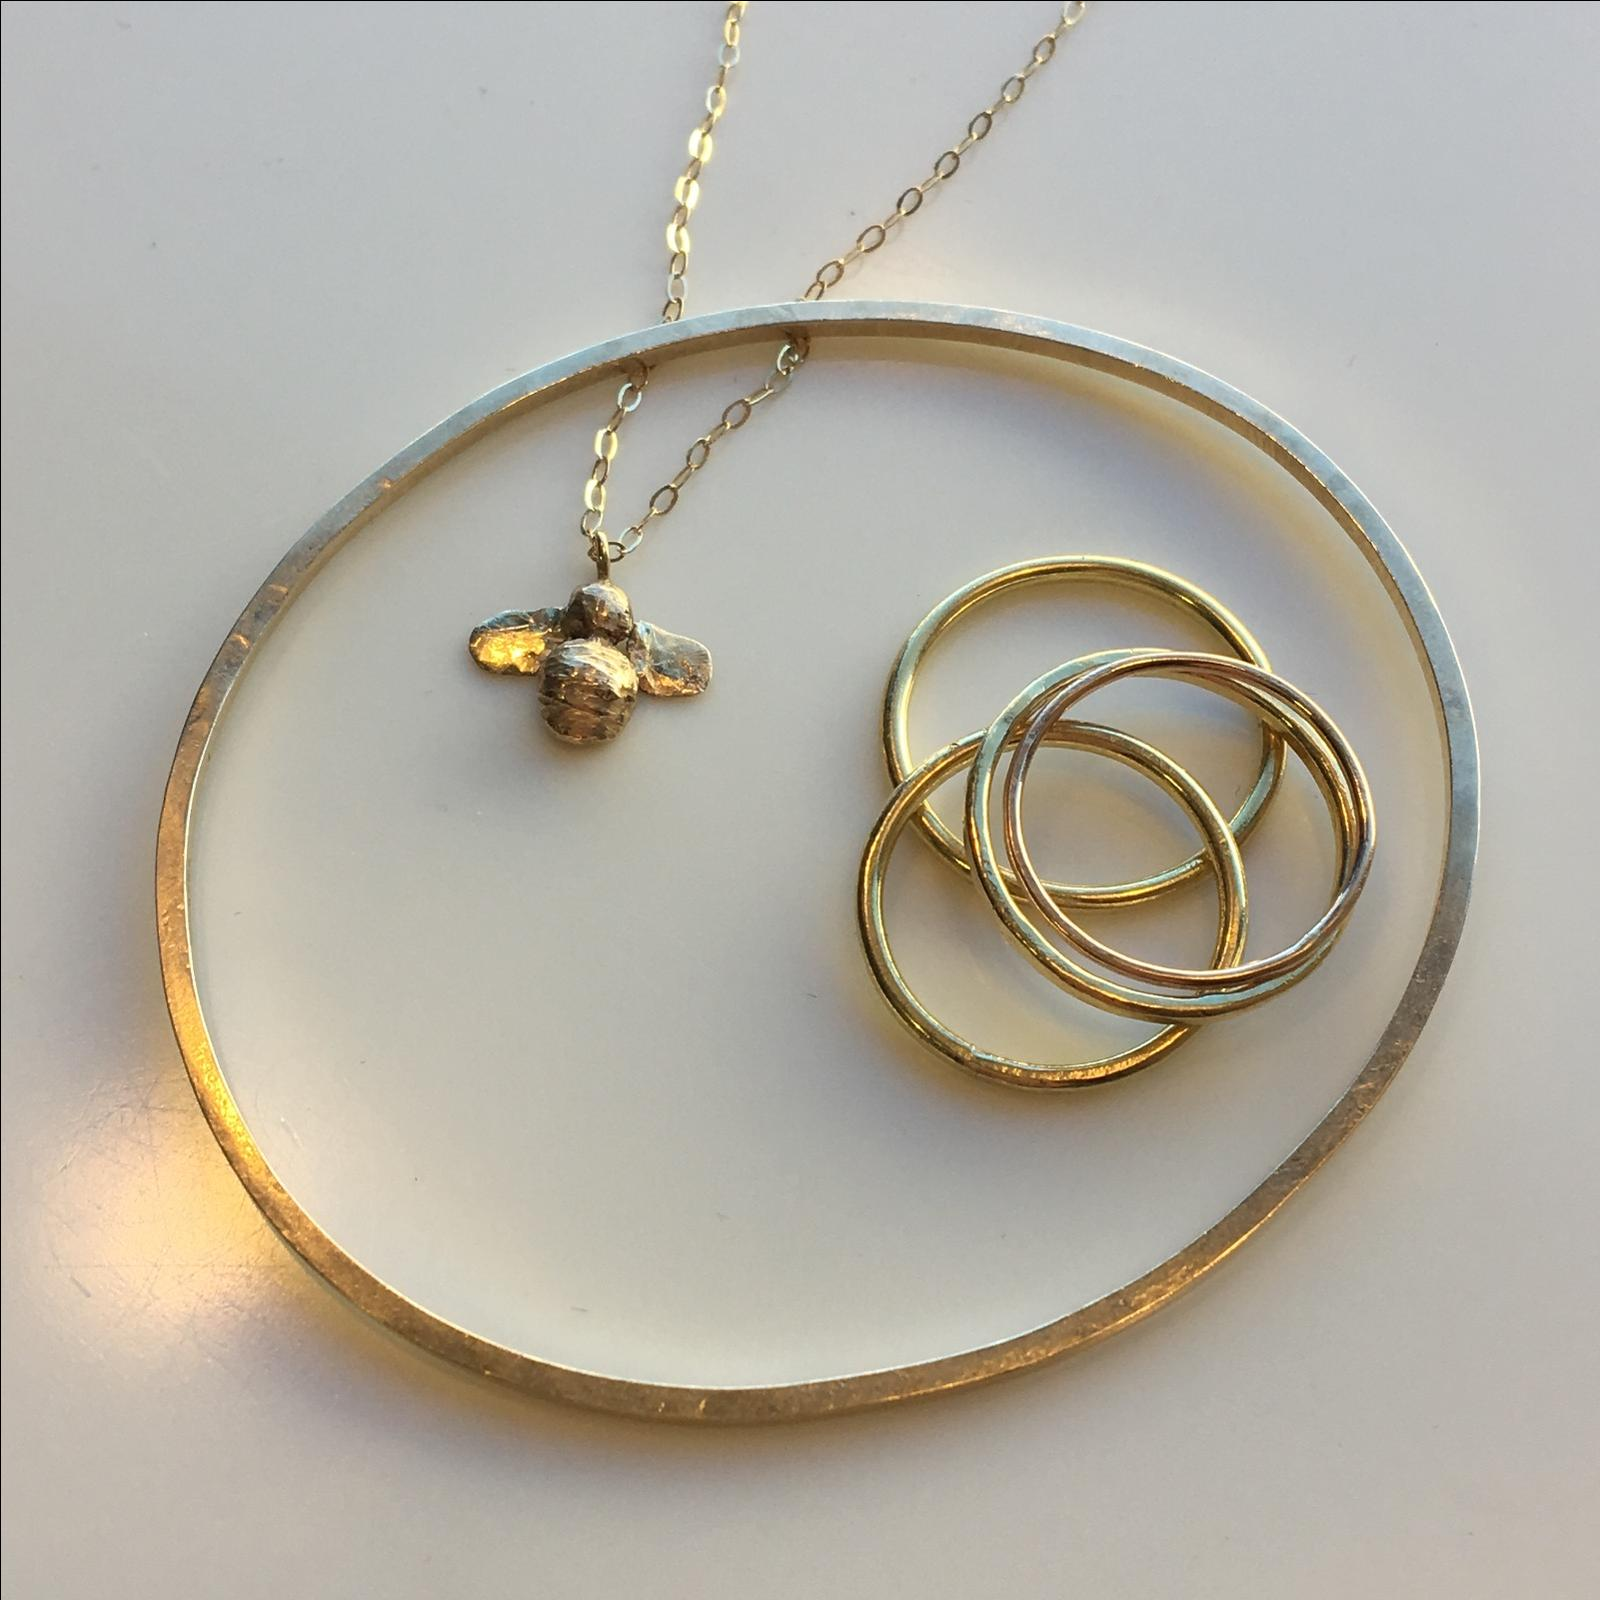 Solid 9ct Gold Hand Made Bee Necklace Unique One Off Jewellery London Designer Ebay